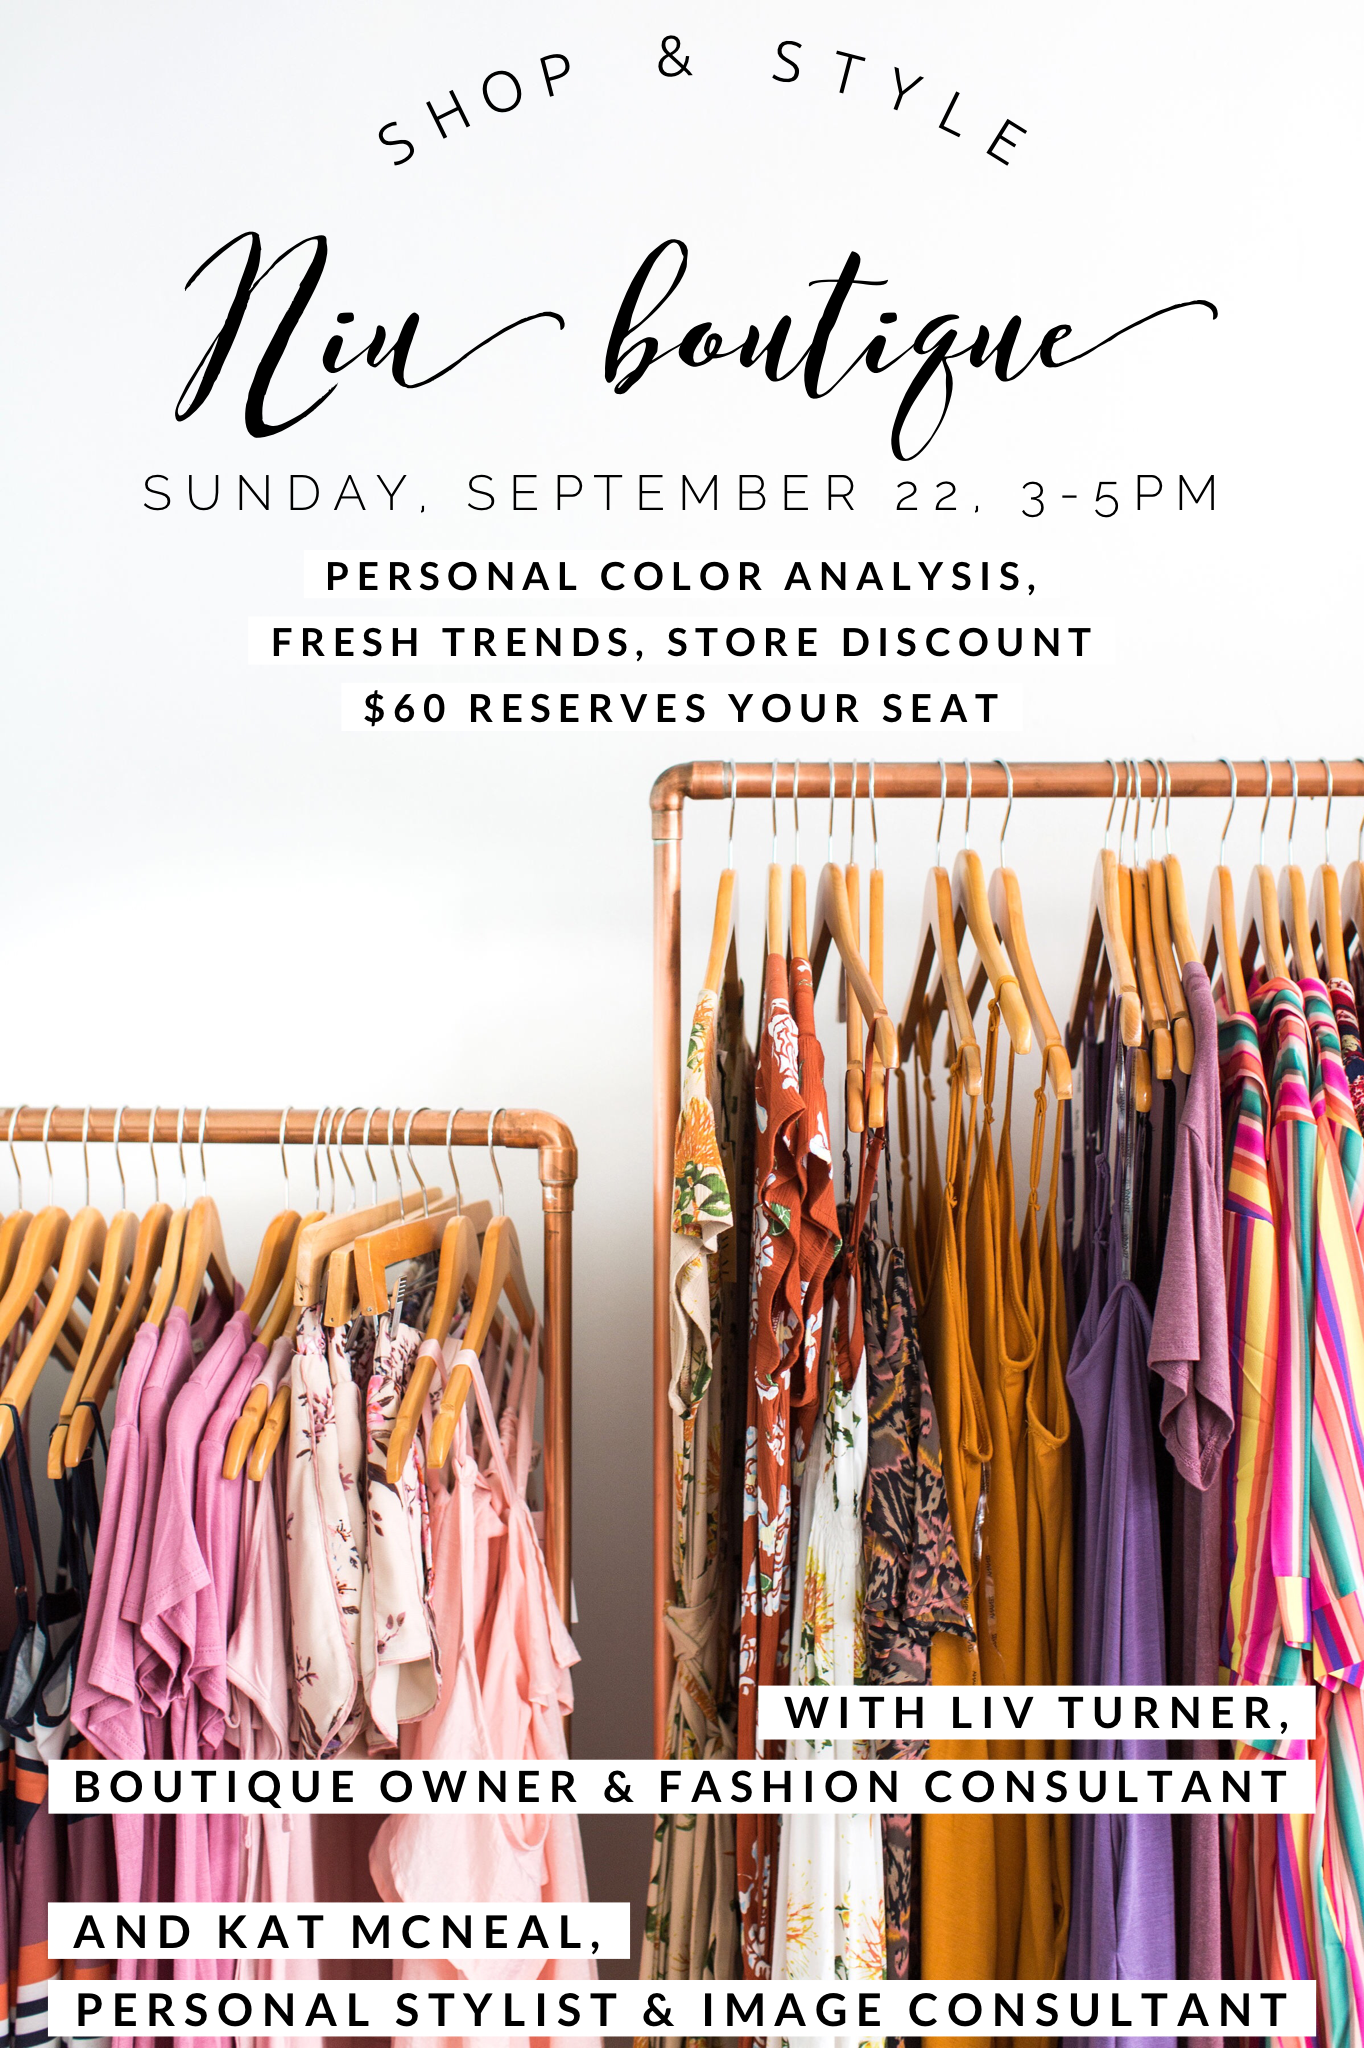 We're Excited to Have You! - Come out and enjoy a Sunday afternoon learning about fashion trends, personal image, and how to style and dress your body type! We'll have goodies bags, store discount, and light refreshments!